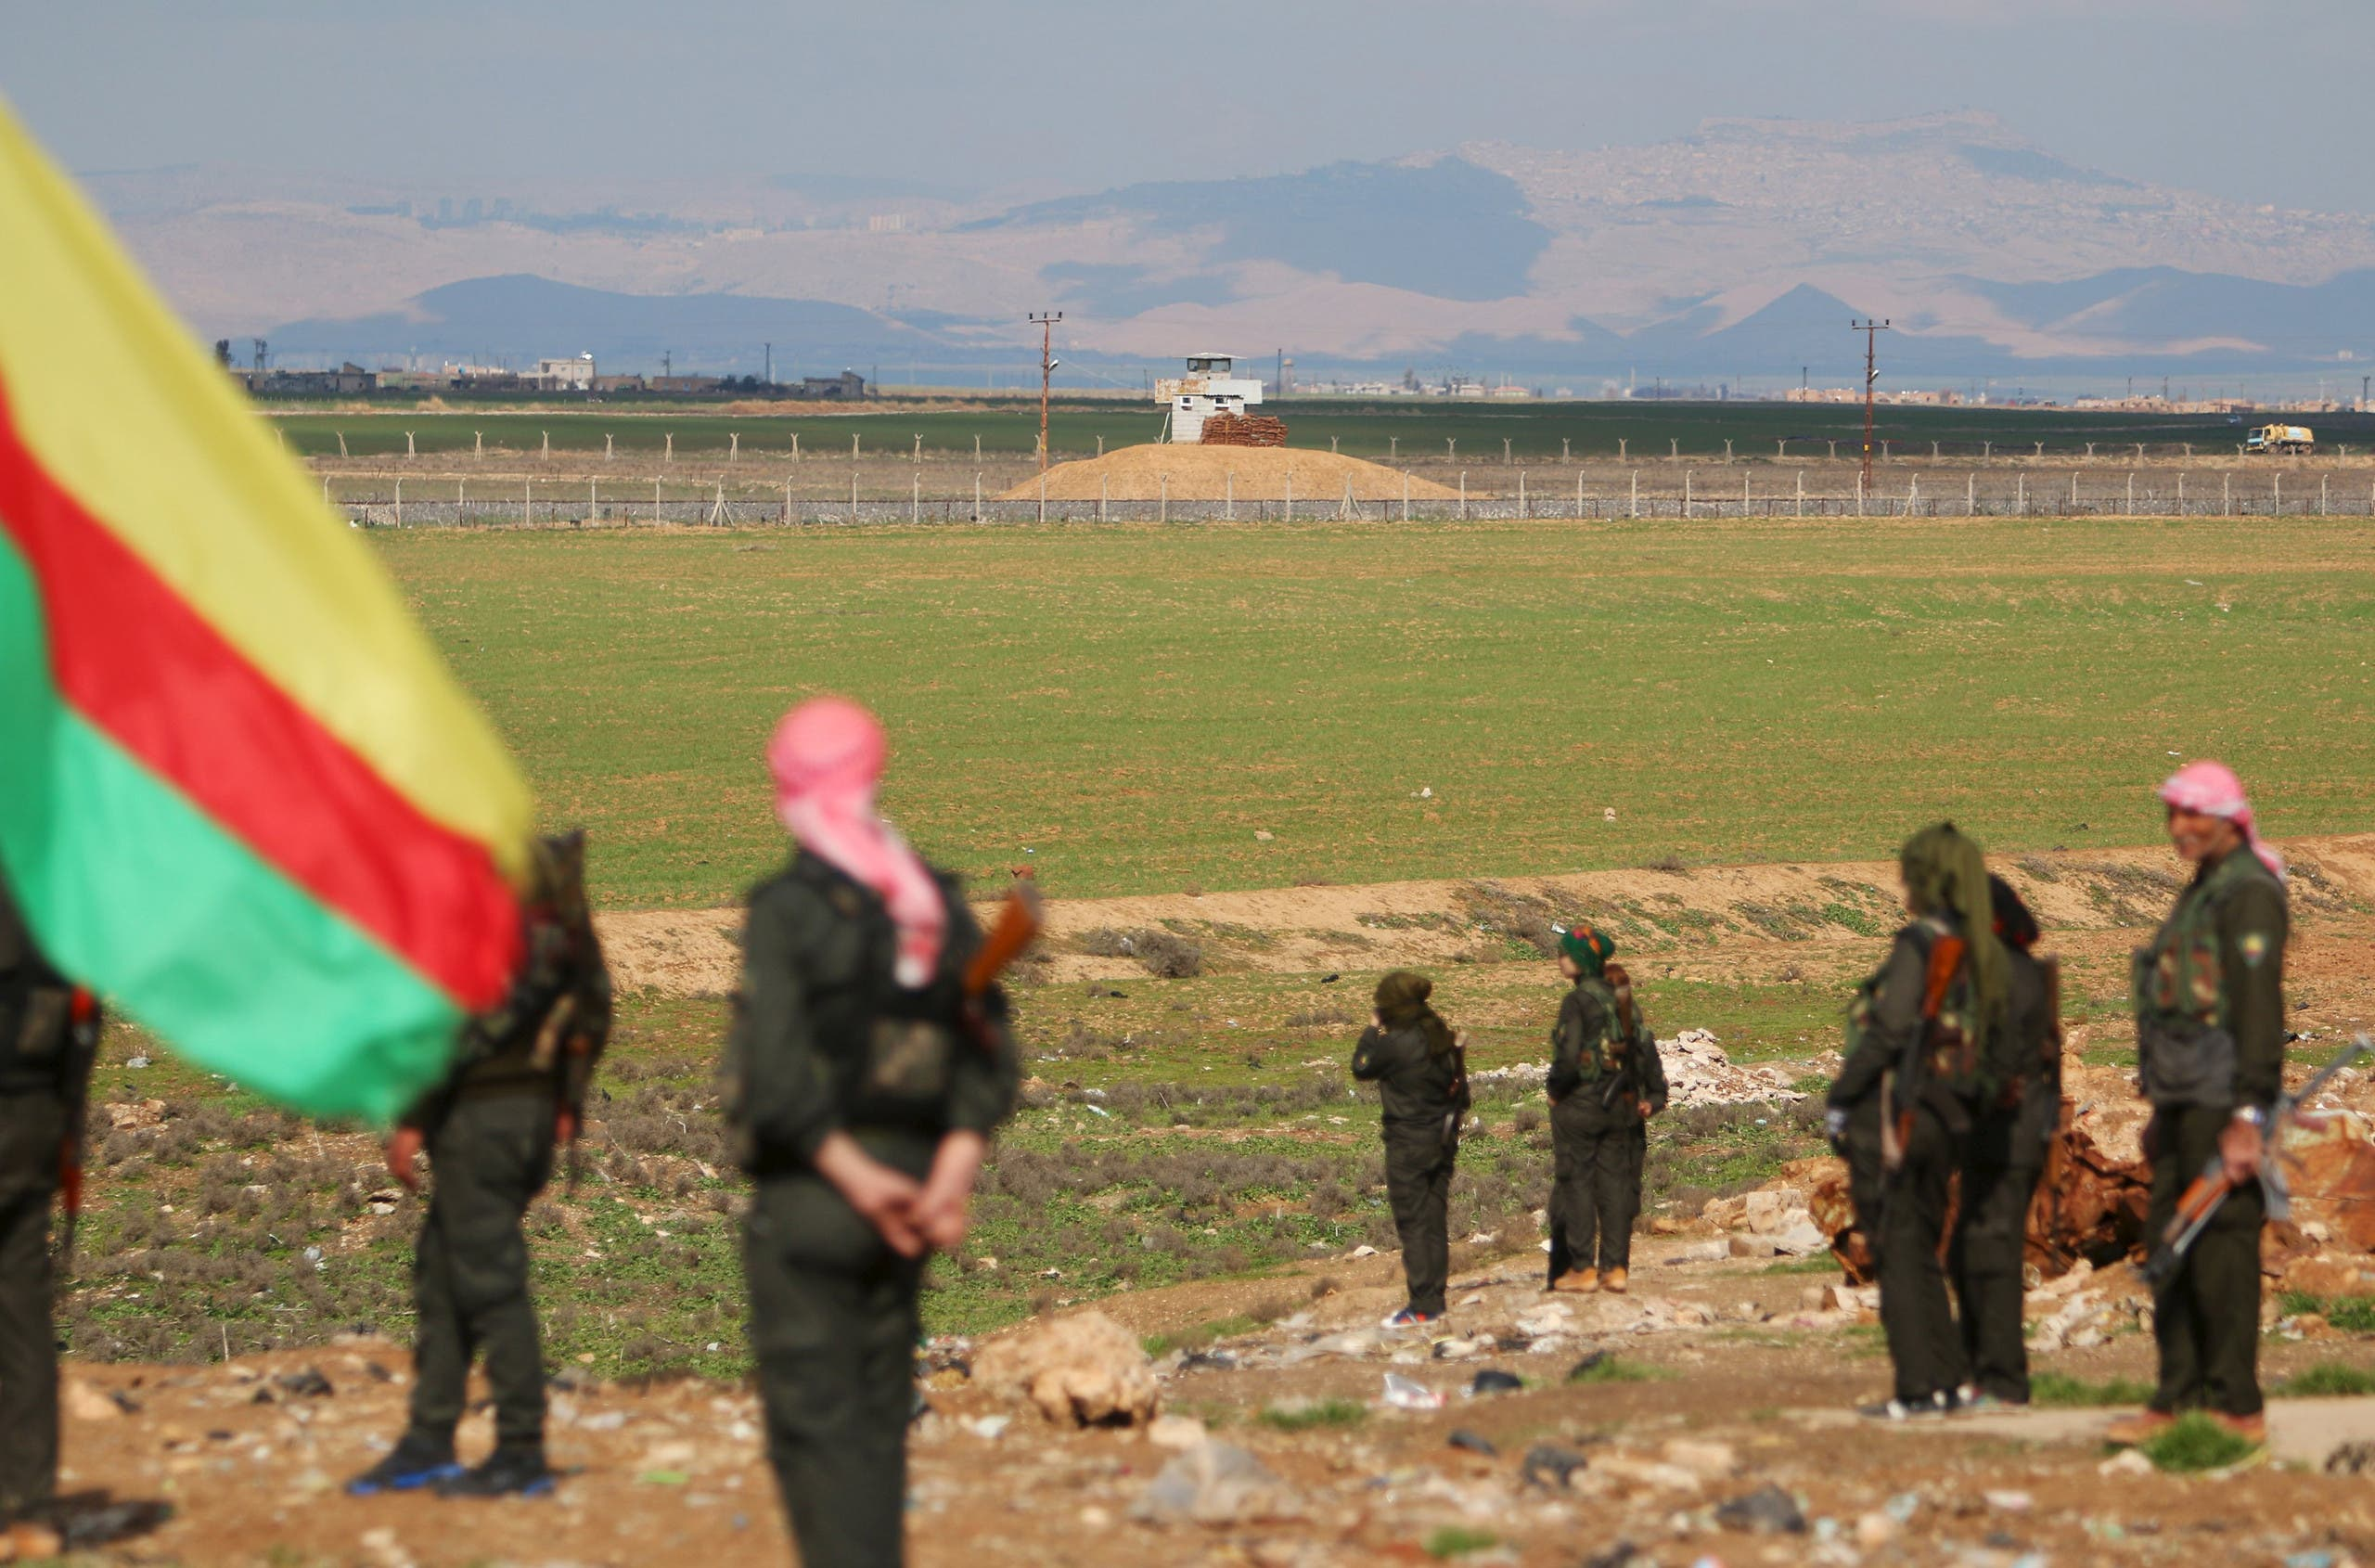 Kurdish members of the Self-Defense Forces stand near the Syrian-Turkish border in the Syrian city of al-Derbasiyah during a protest against the operations launched in Turkey by government security forces against the Kurds, February 9, 2016. REUTERS